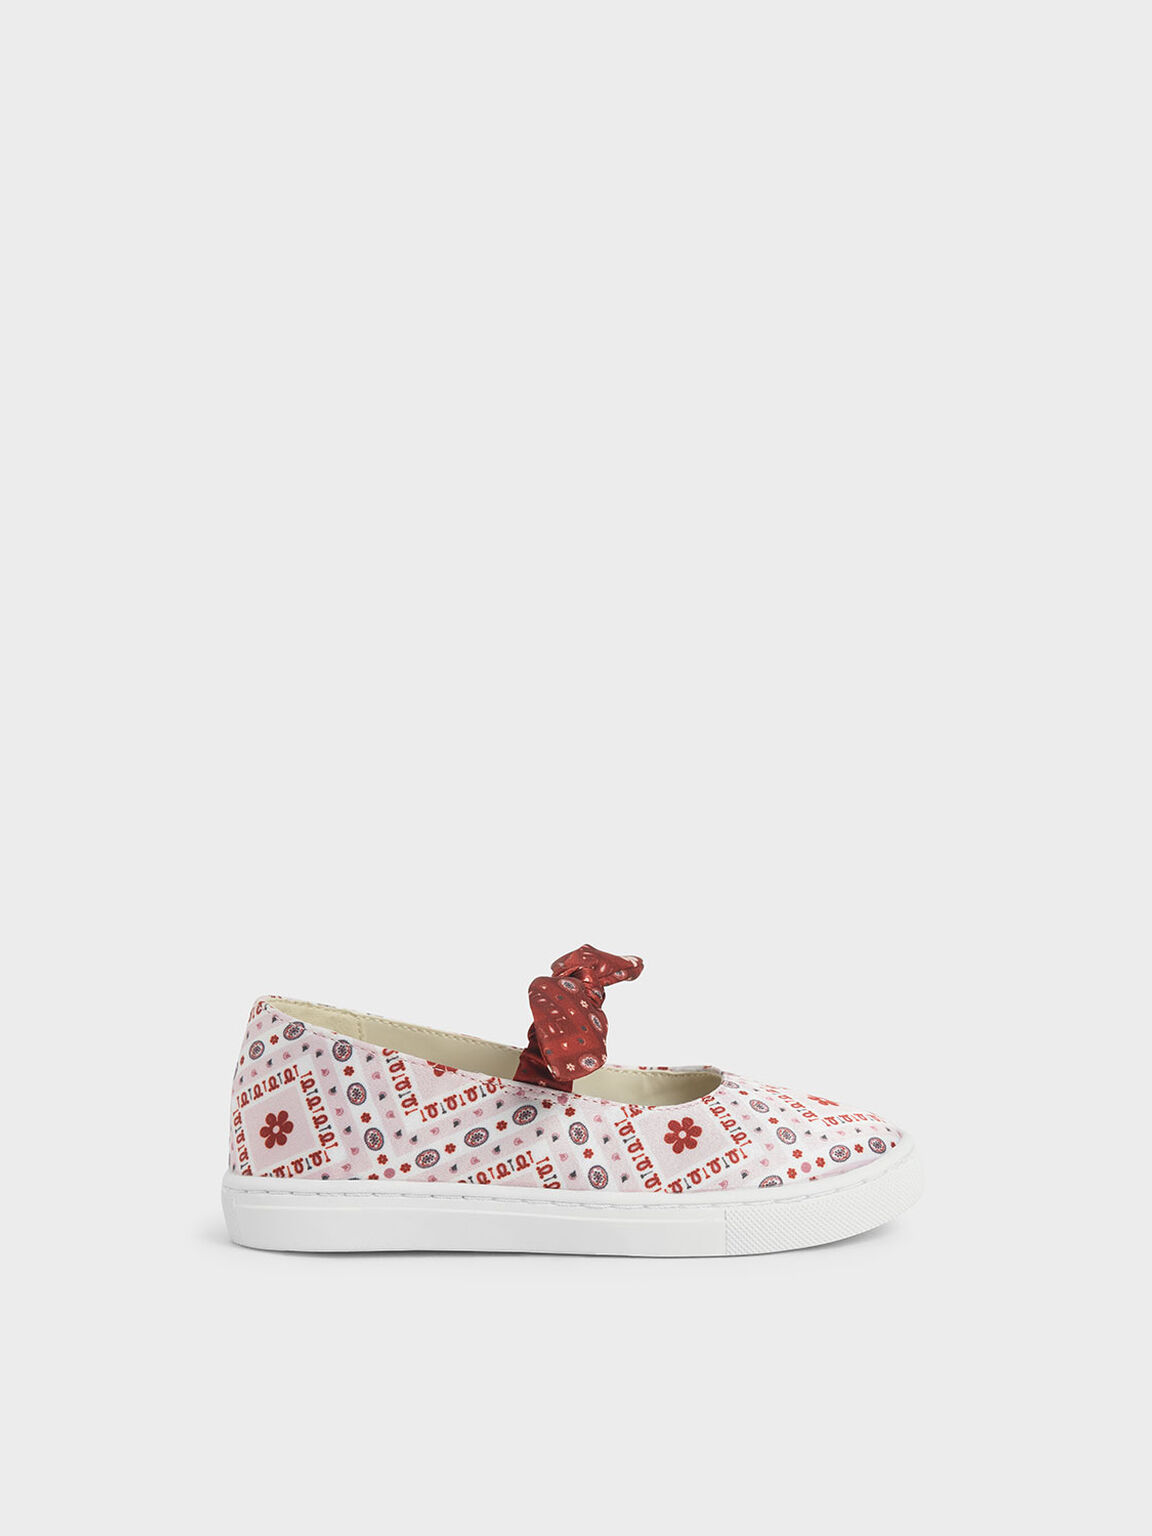 The Purpose Collection - Girls' Bandana Print Slip-On Sneakers, Pink, hi-res